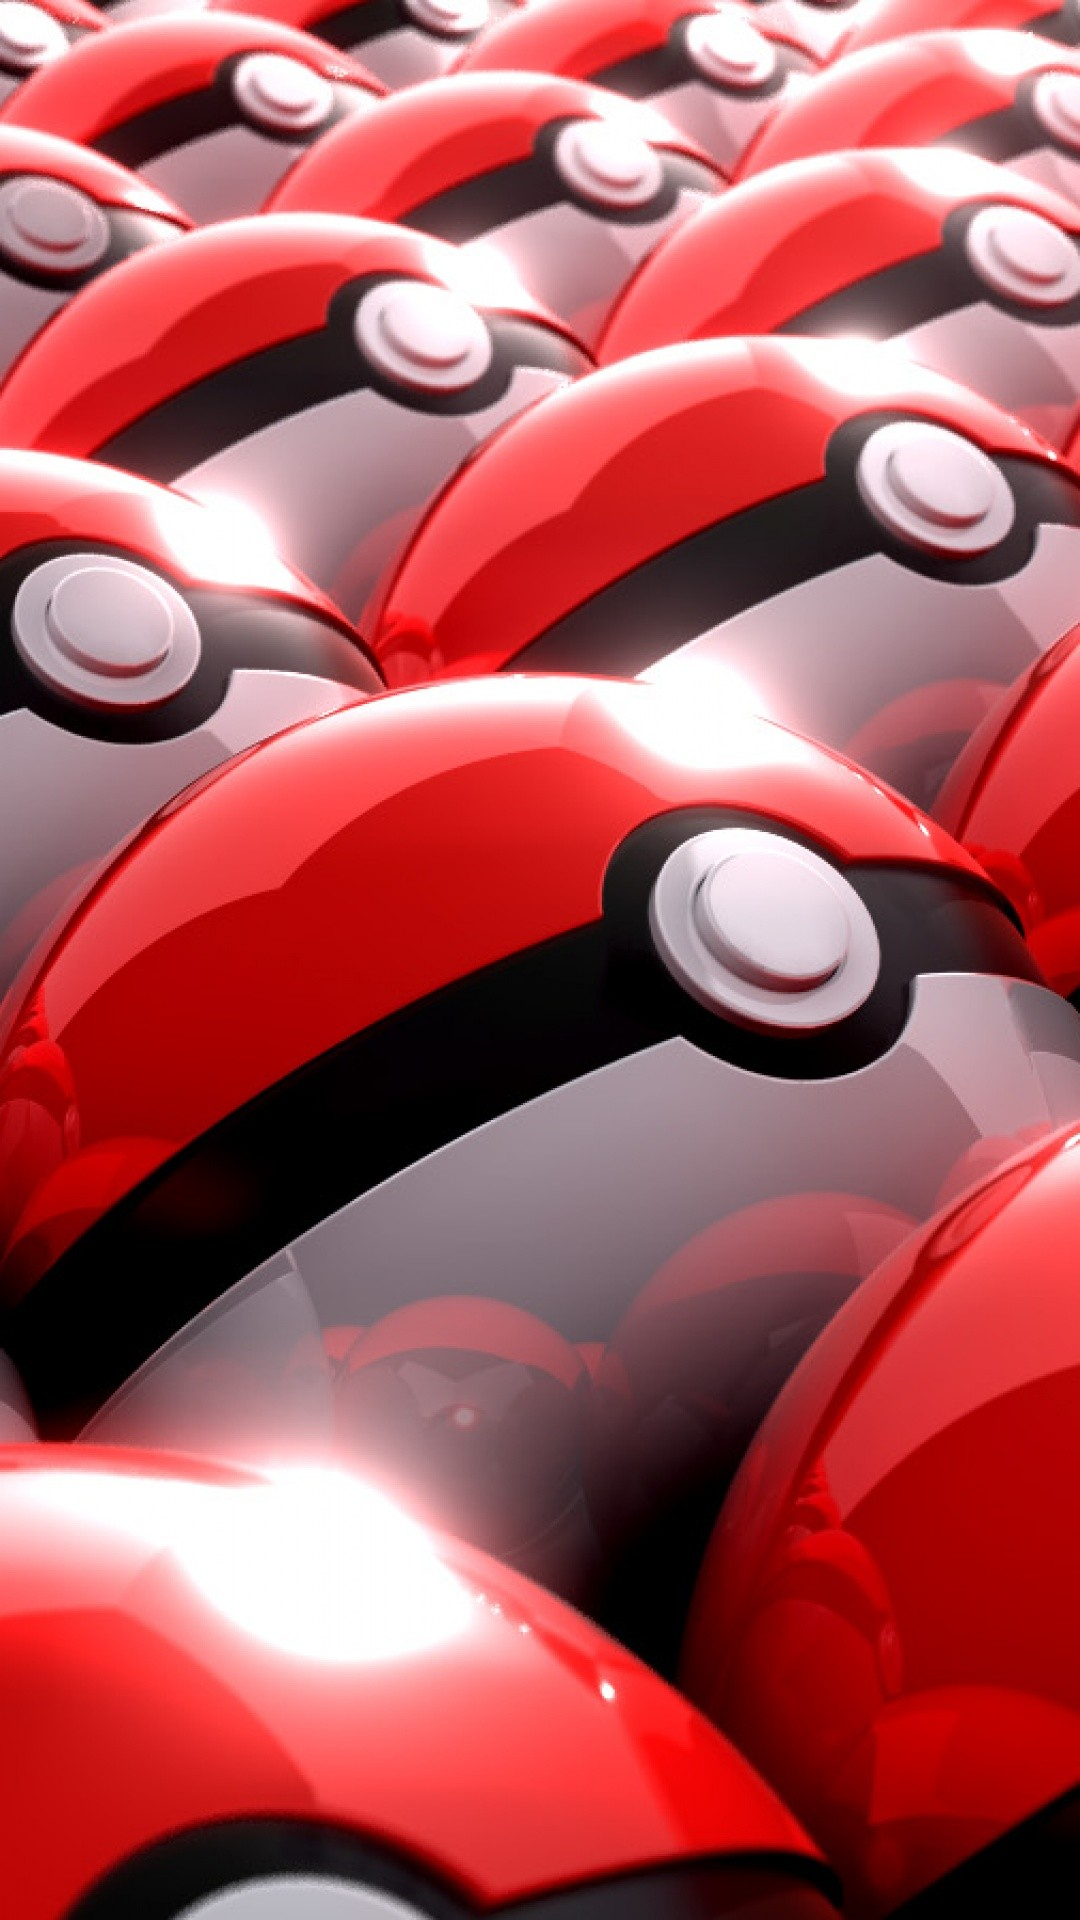 Pokemon Go Mobile Wallpapers Hd Pokeballs Data Src Iphone Pokemon Wallpaper Pokeball 1080x1920 Download Hd Wallpaper Wallpapertip